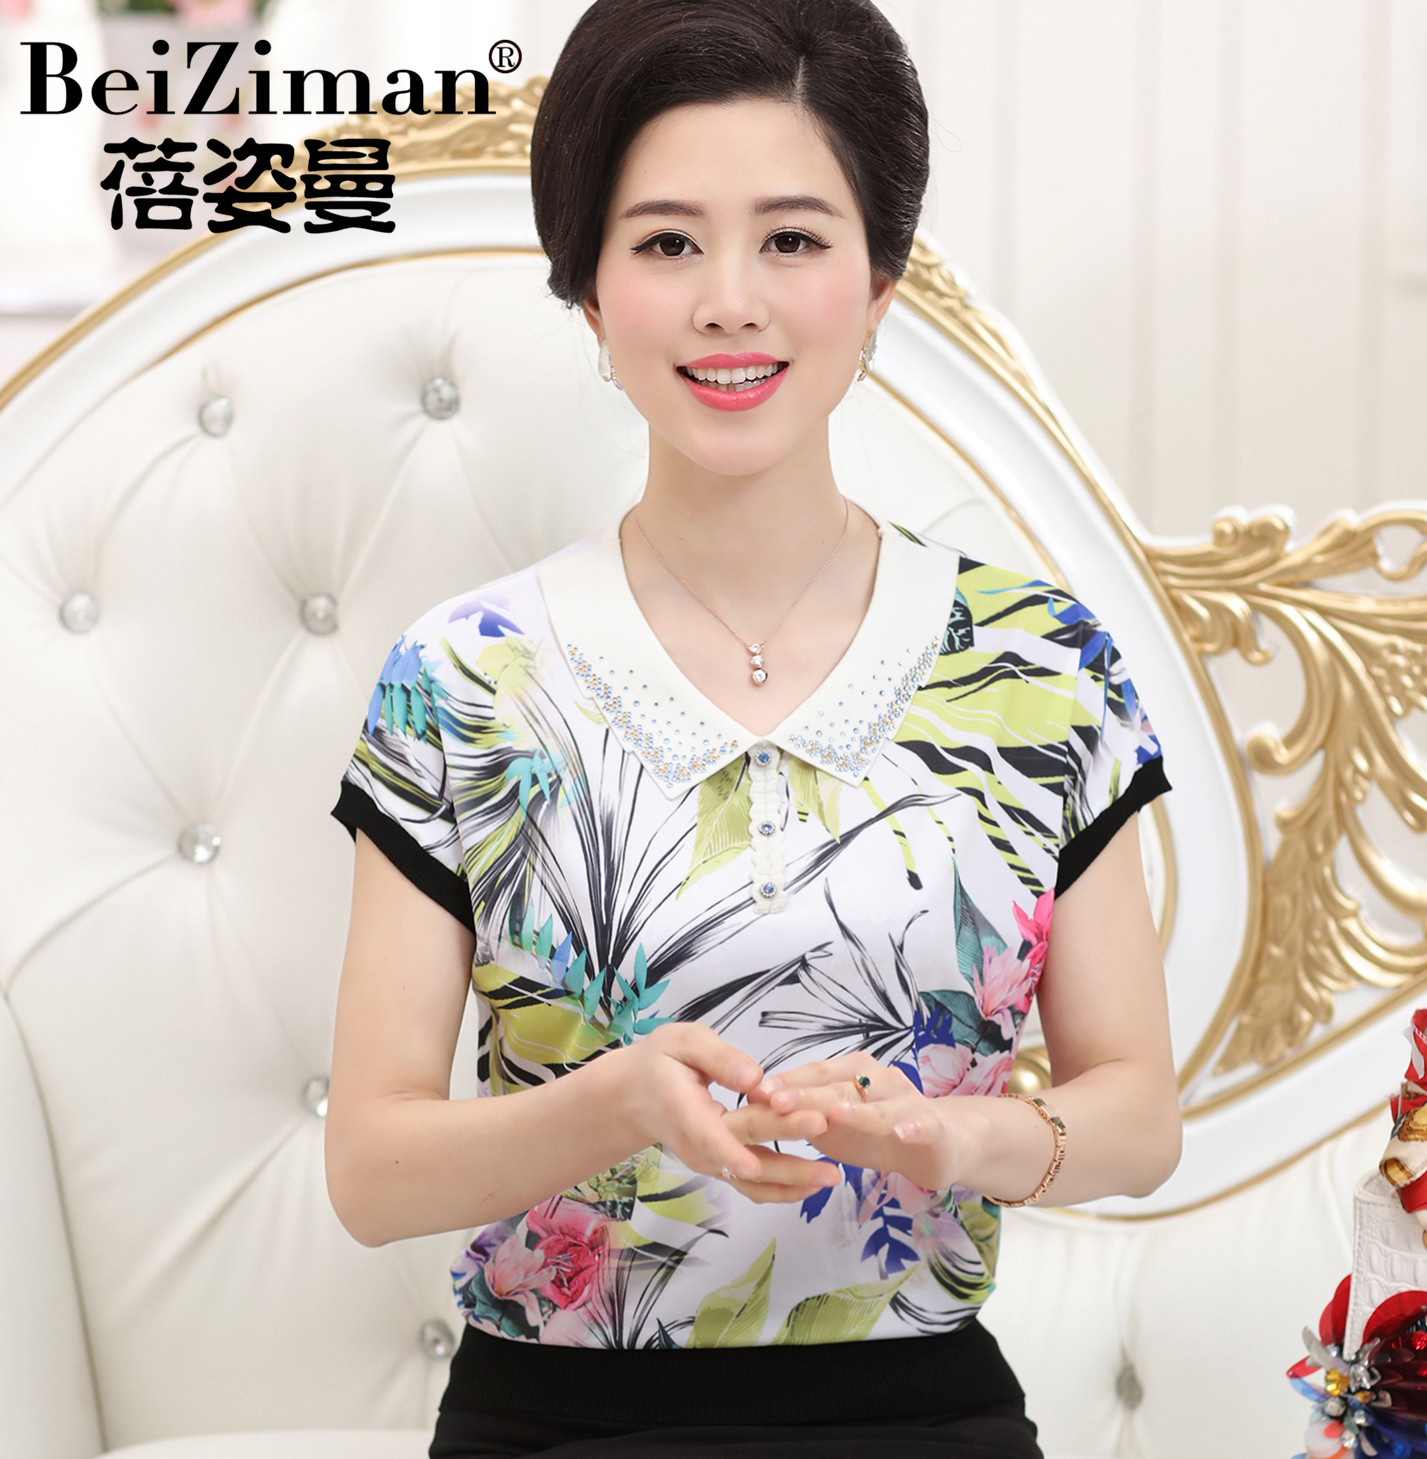 Bei zi man middle-aged middle-aged women's summer middle-aged middle-aged mother dress lapel t-shirt printing loose chiffon short sleeve t-shirt female